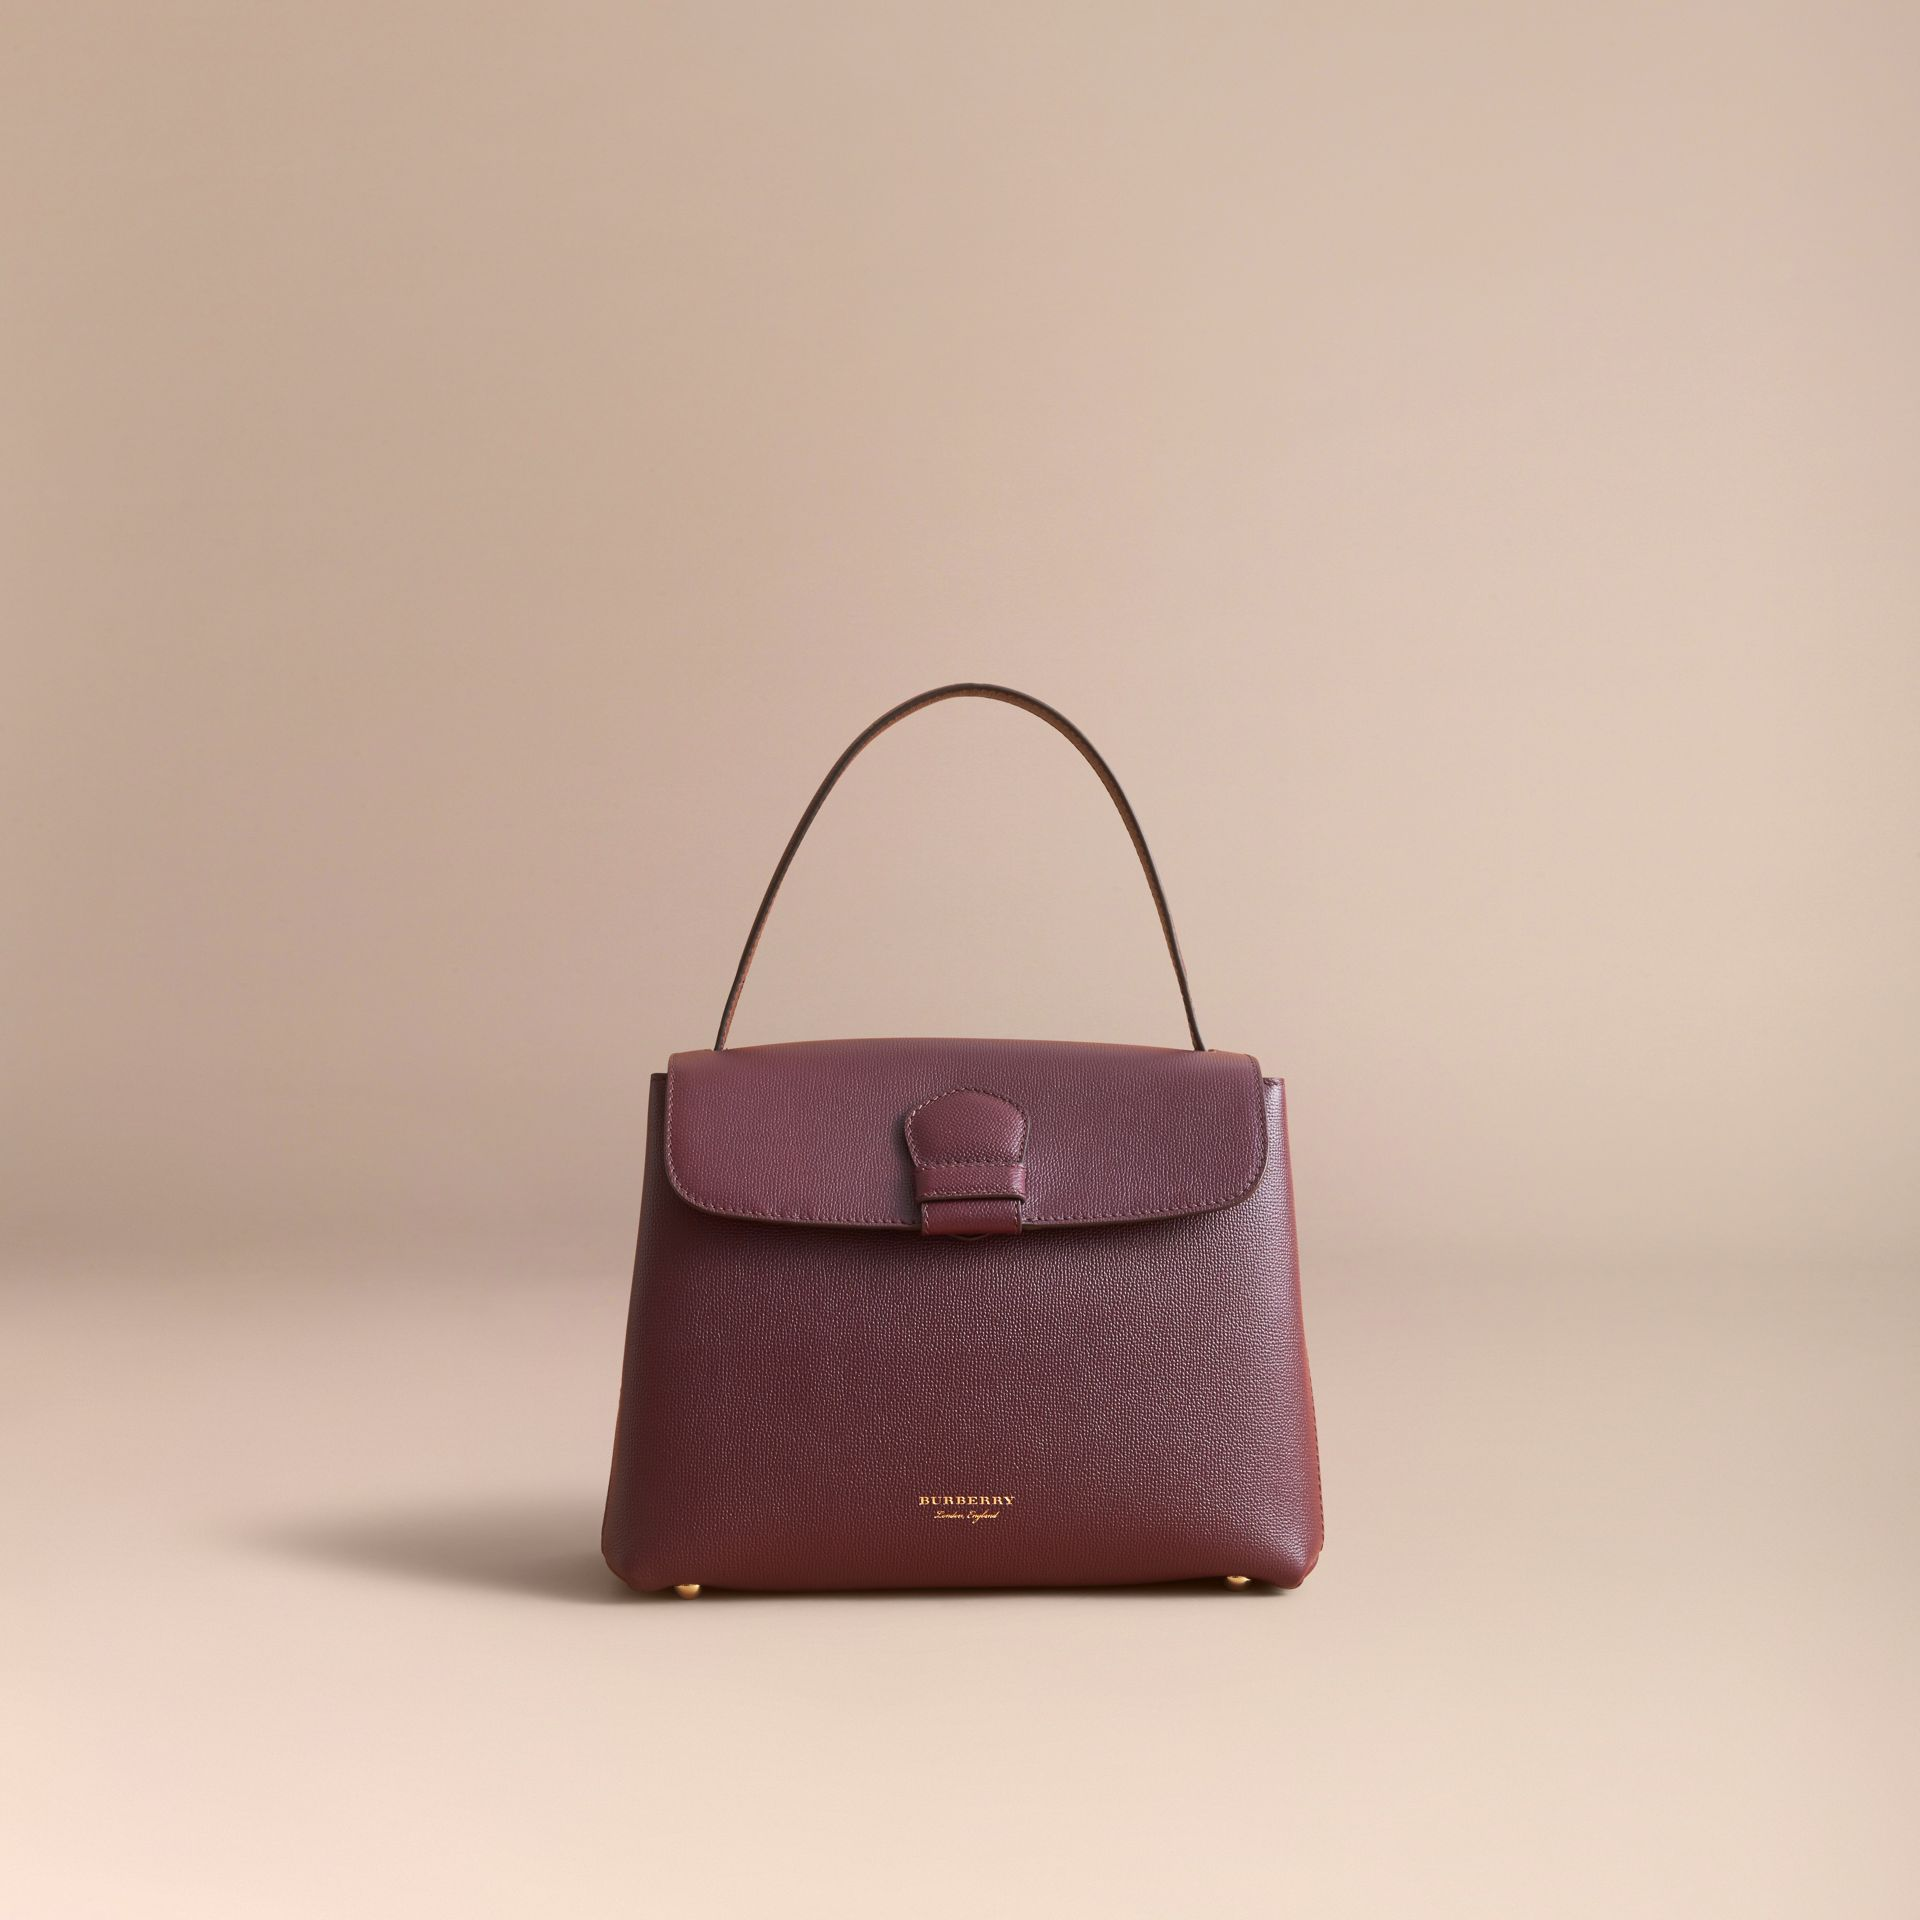 Medium Grainy Leather and House Check Tote Bag in Mahogany Red - Women | Burberry - gallery image 8